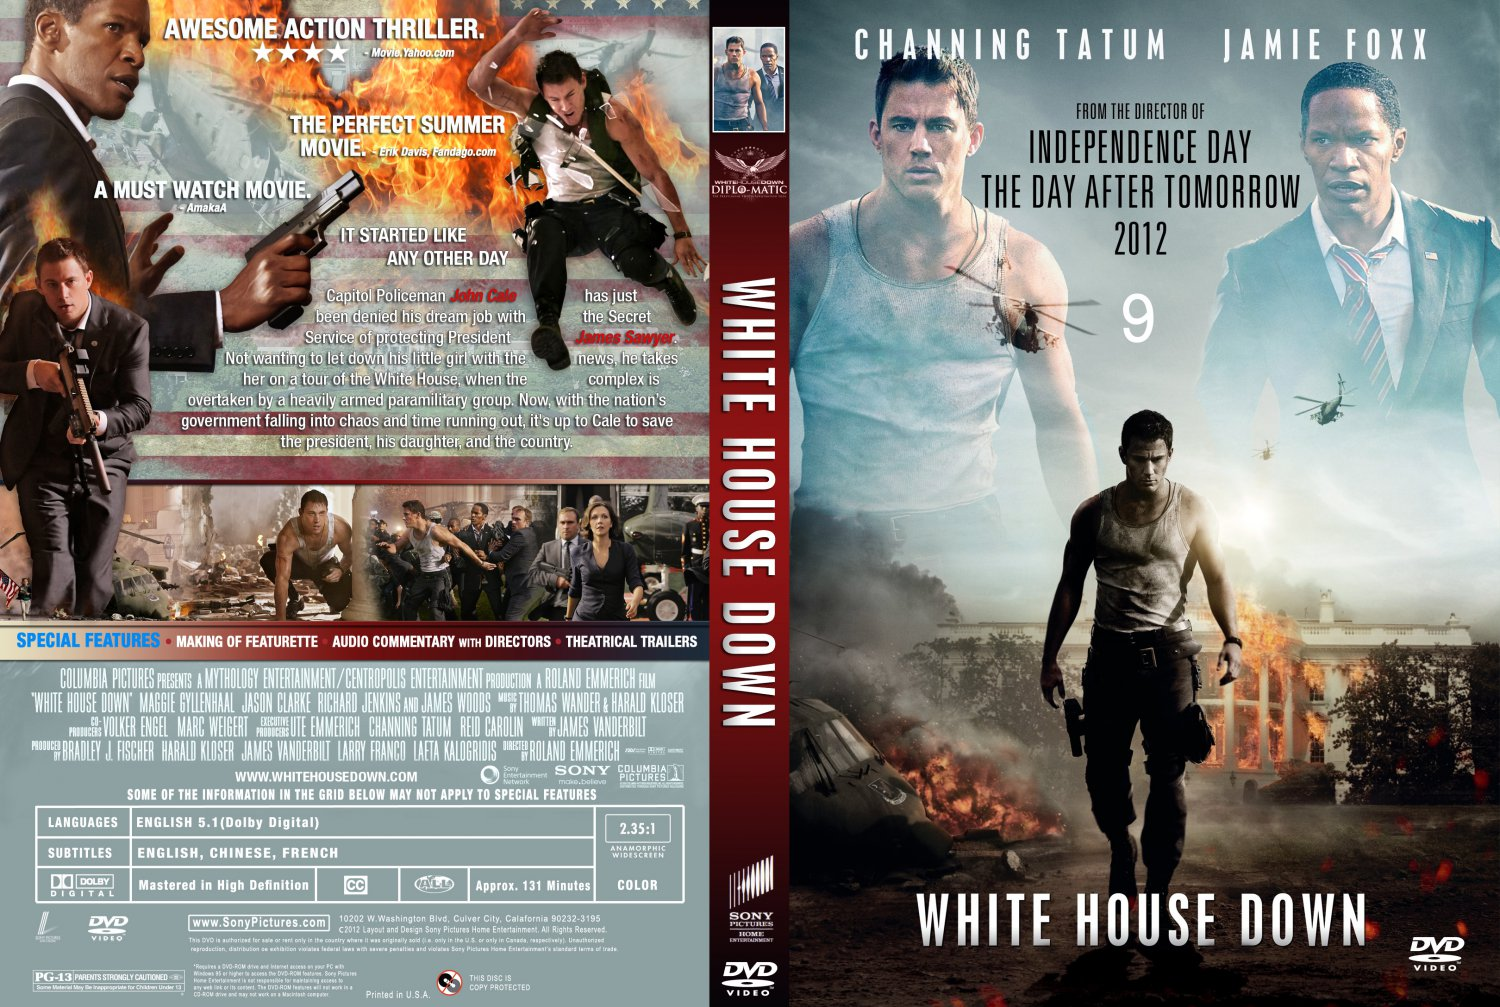 white house down movie dvd custom covers white house down 2013 custom cover dvd covers. Black Bedroom Furniture Sets. Home Design Ideas